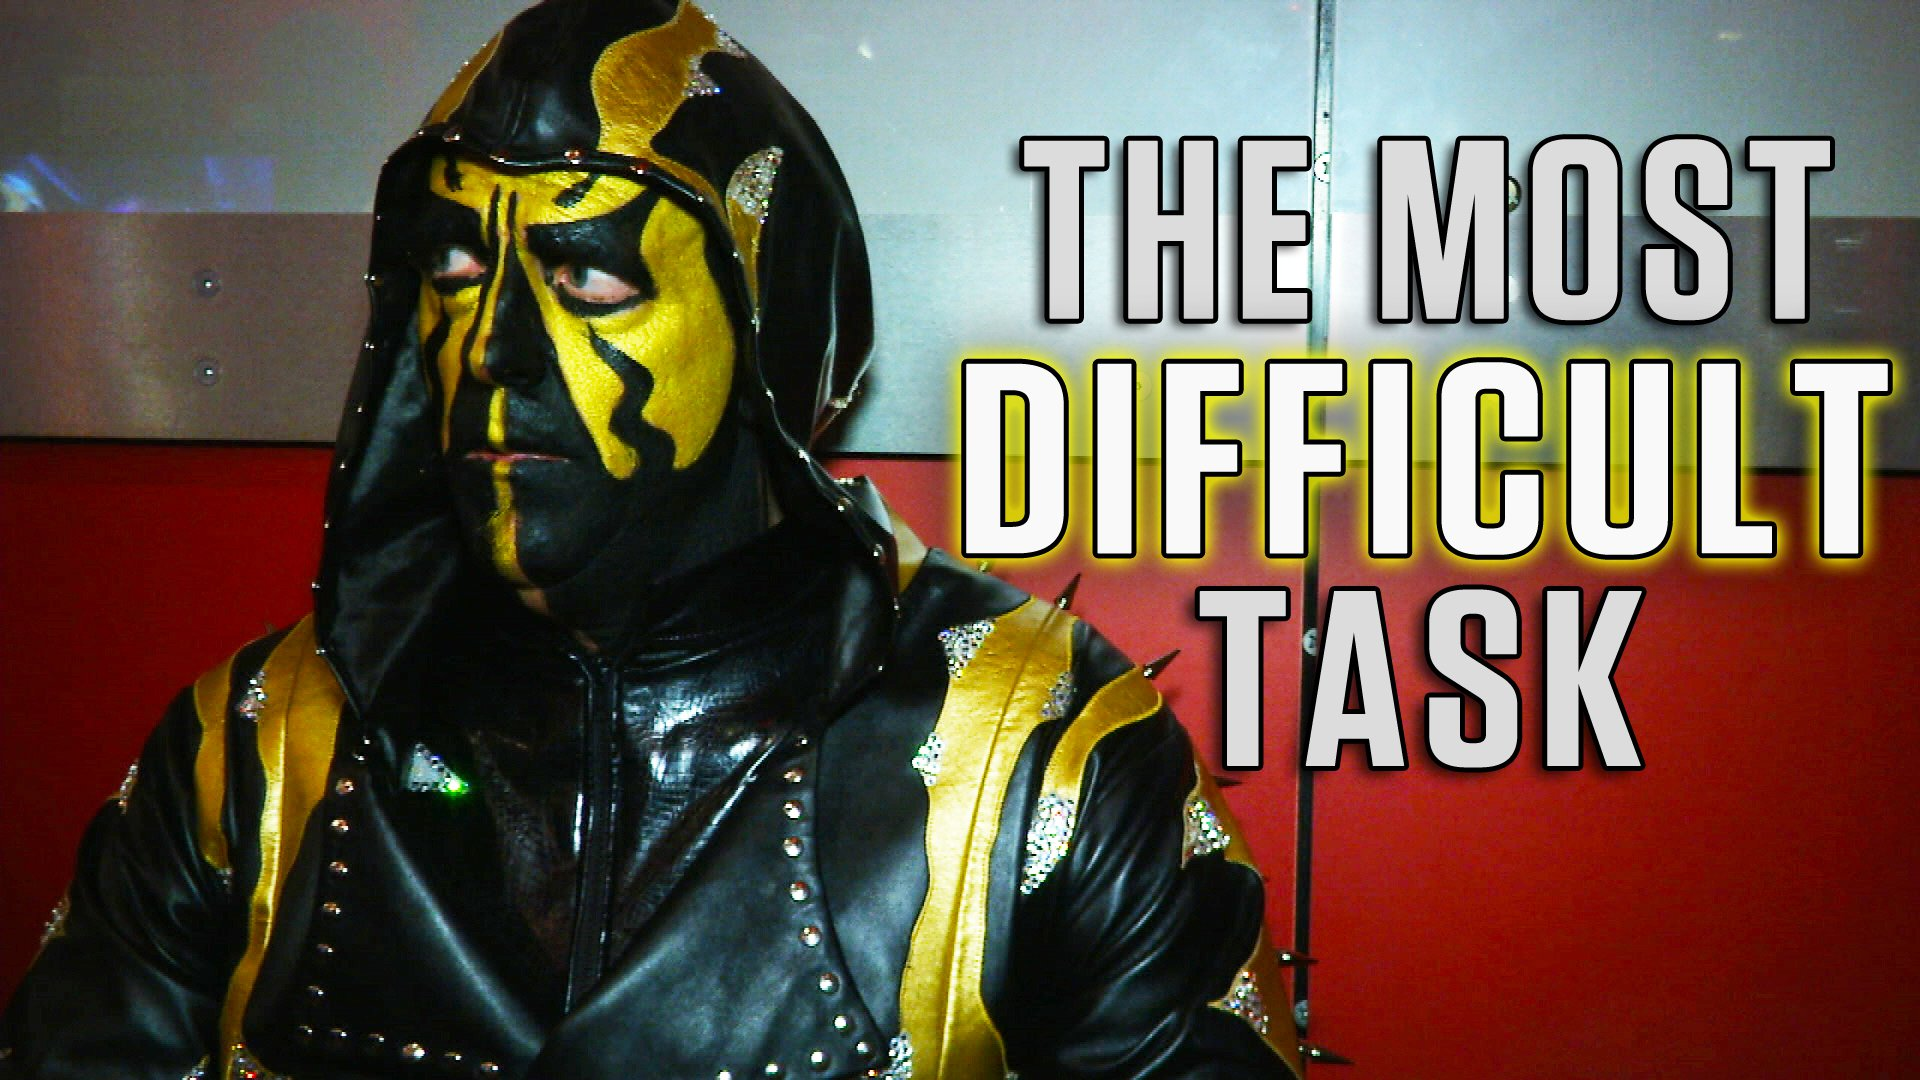 Follow Goldust as he prepares to battle Stardust at WWE Fastlane: WWE.com Exclusive, February 23, 2015